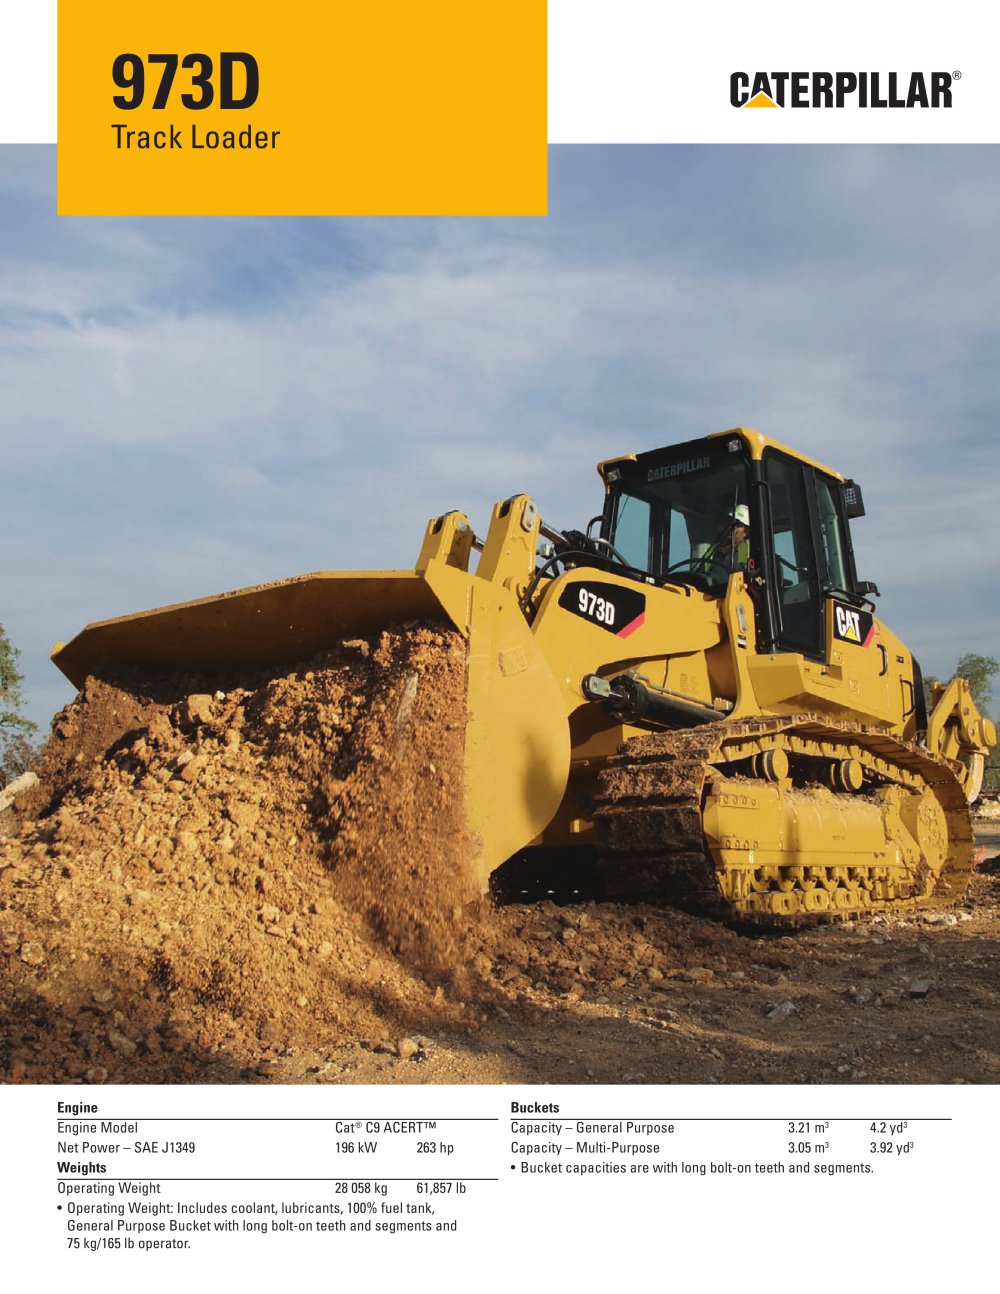 973d track loader caterpillar equipment pdf catalogue 973d track loader 1 20 pages publicscrutiny Choice Image